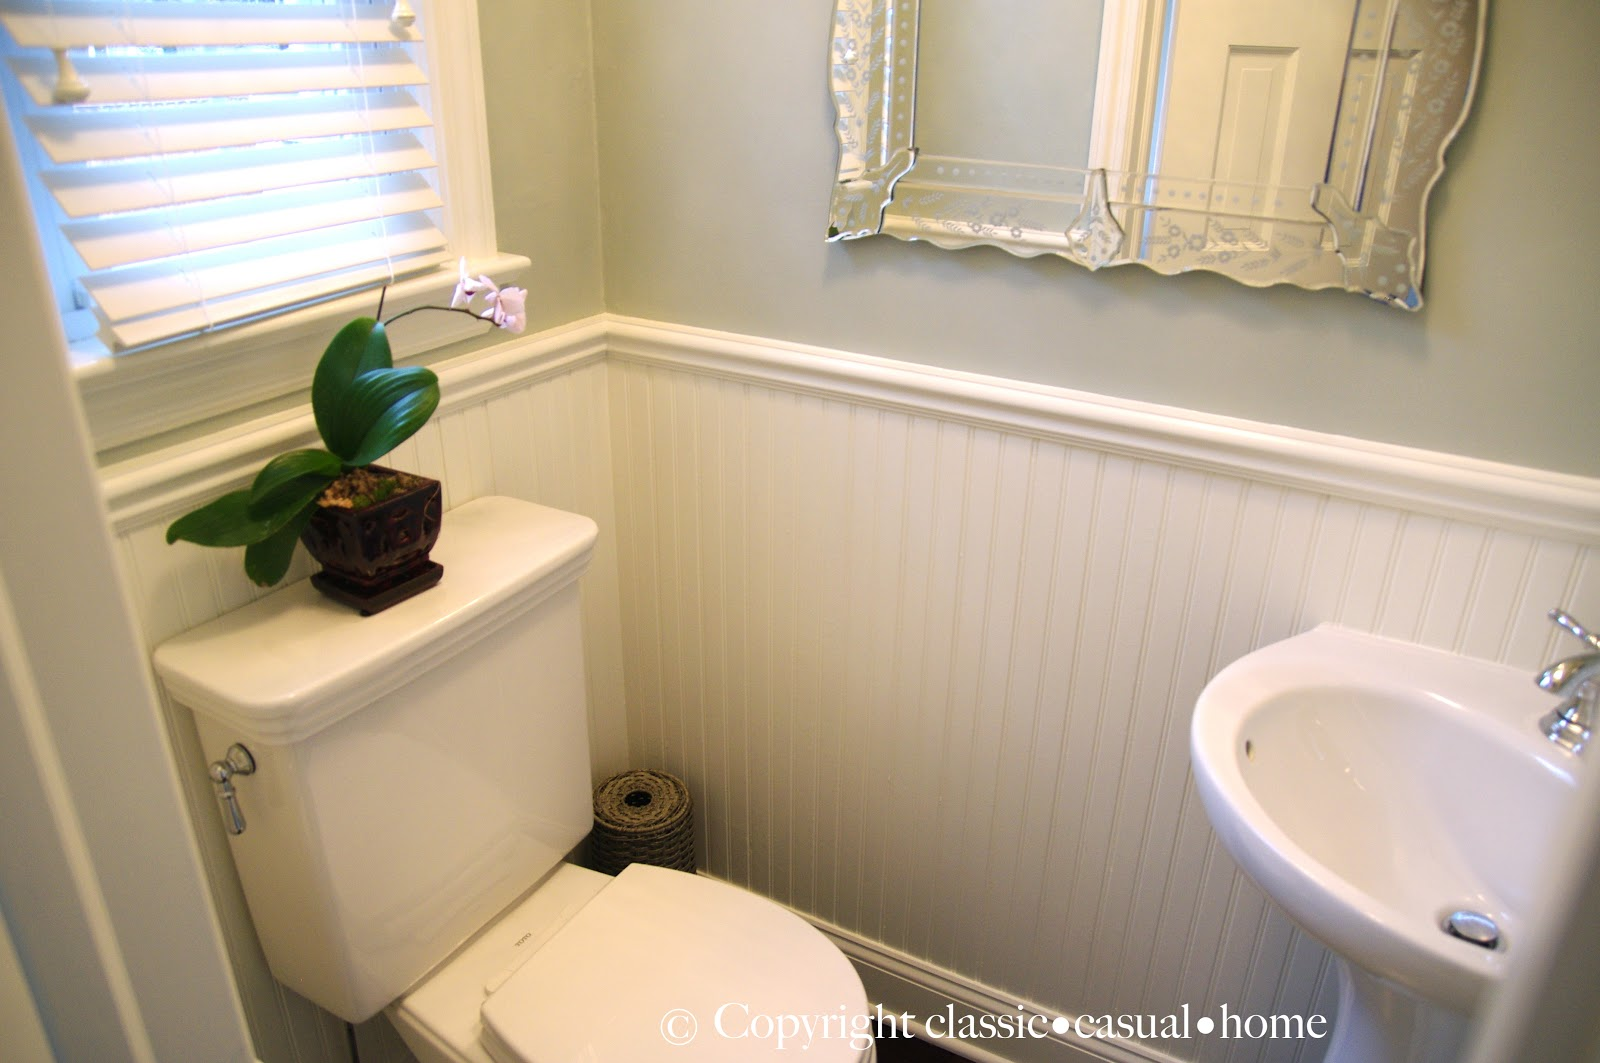 Tiny powder room before and after classic casual home - Small powder room sink ...